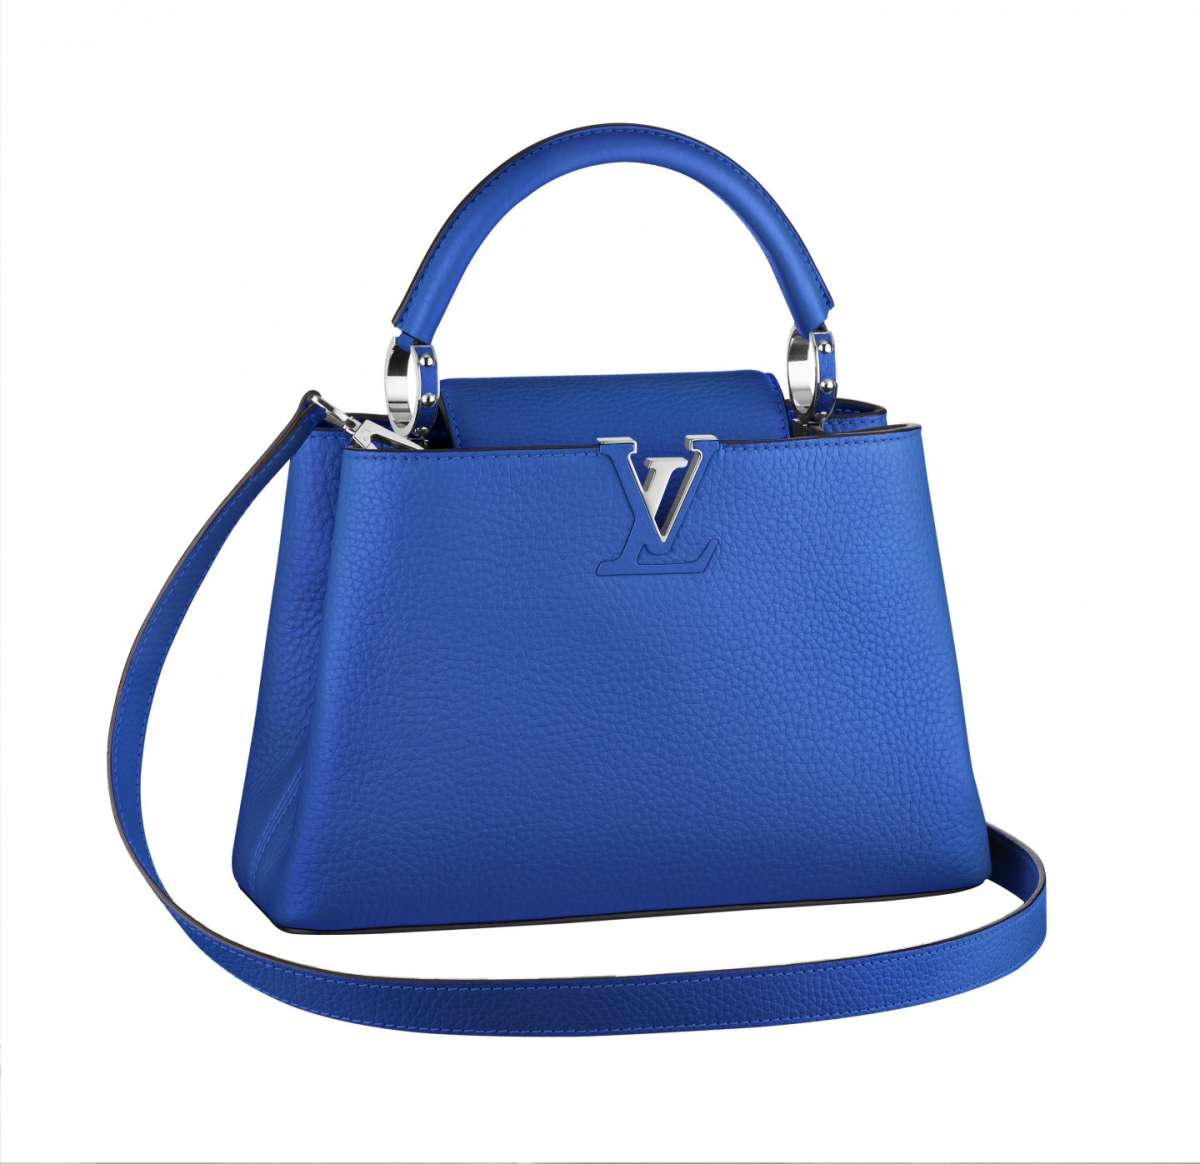 Mini bag blu elettrico Louis Vuitton